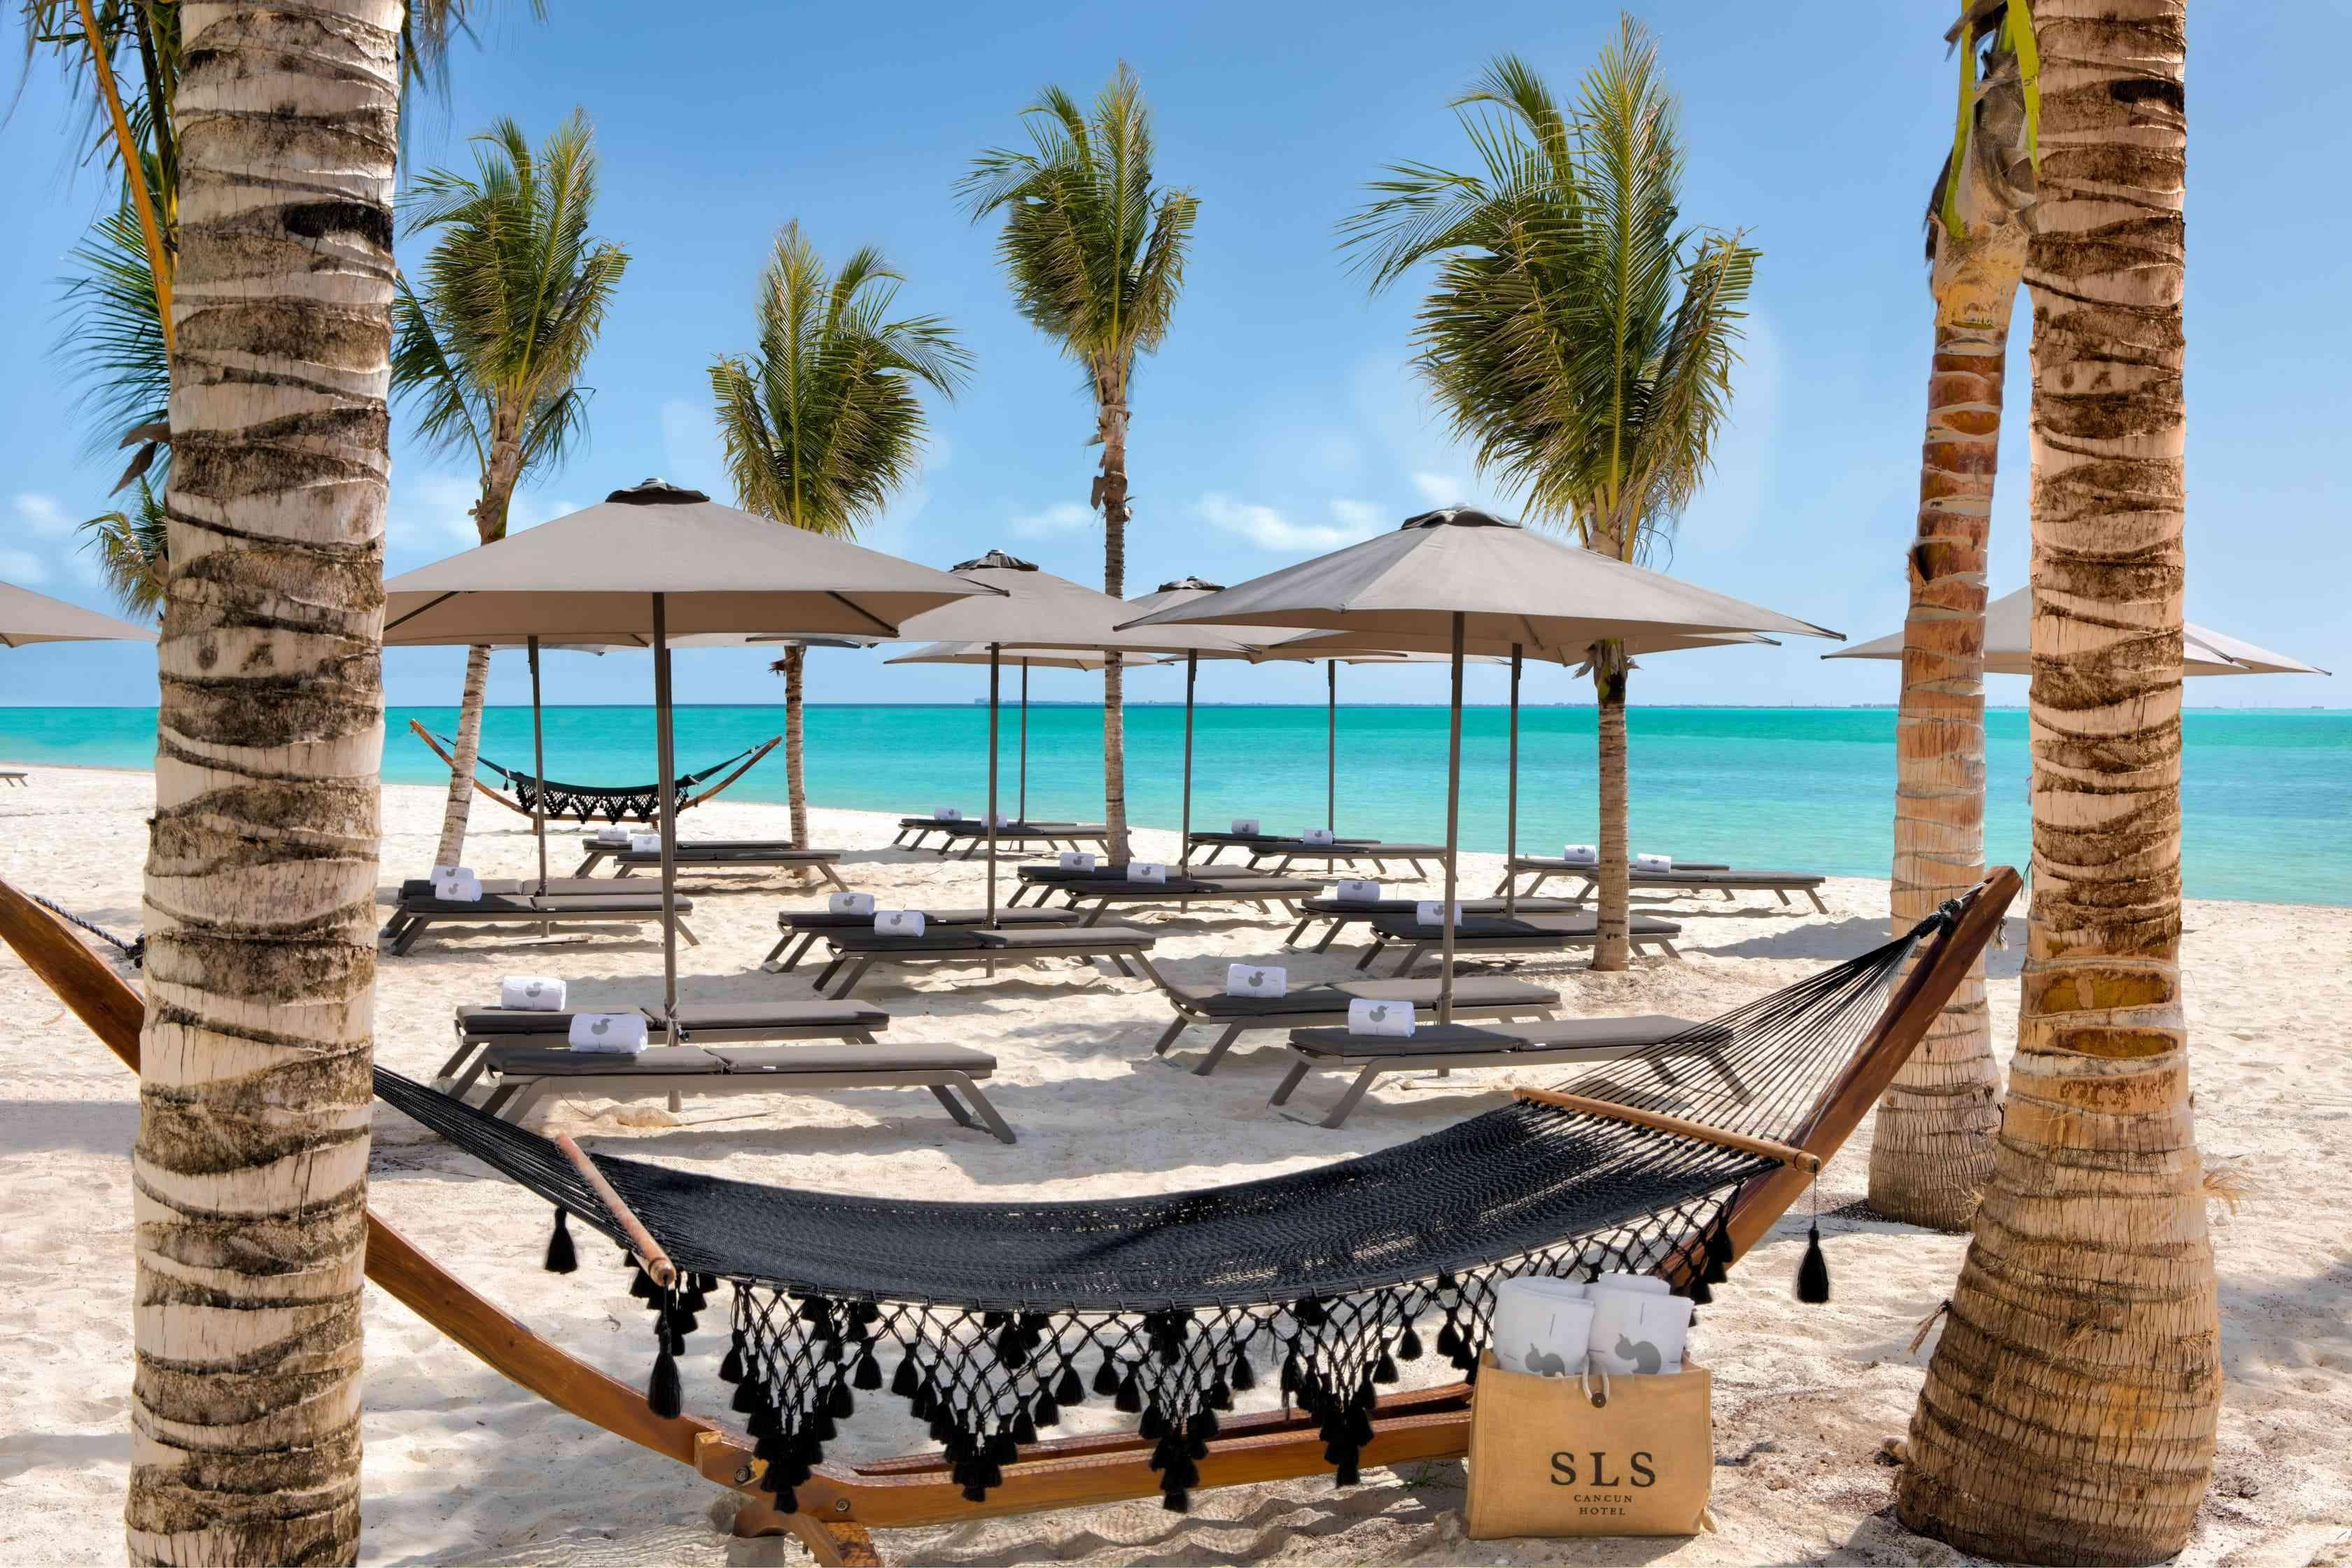 Sitting area on the beach with hammocks and umbrella covered chaise loungers